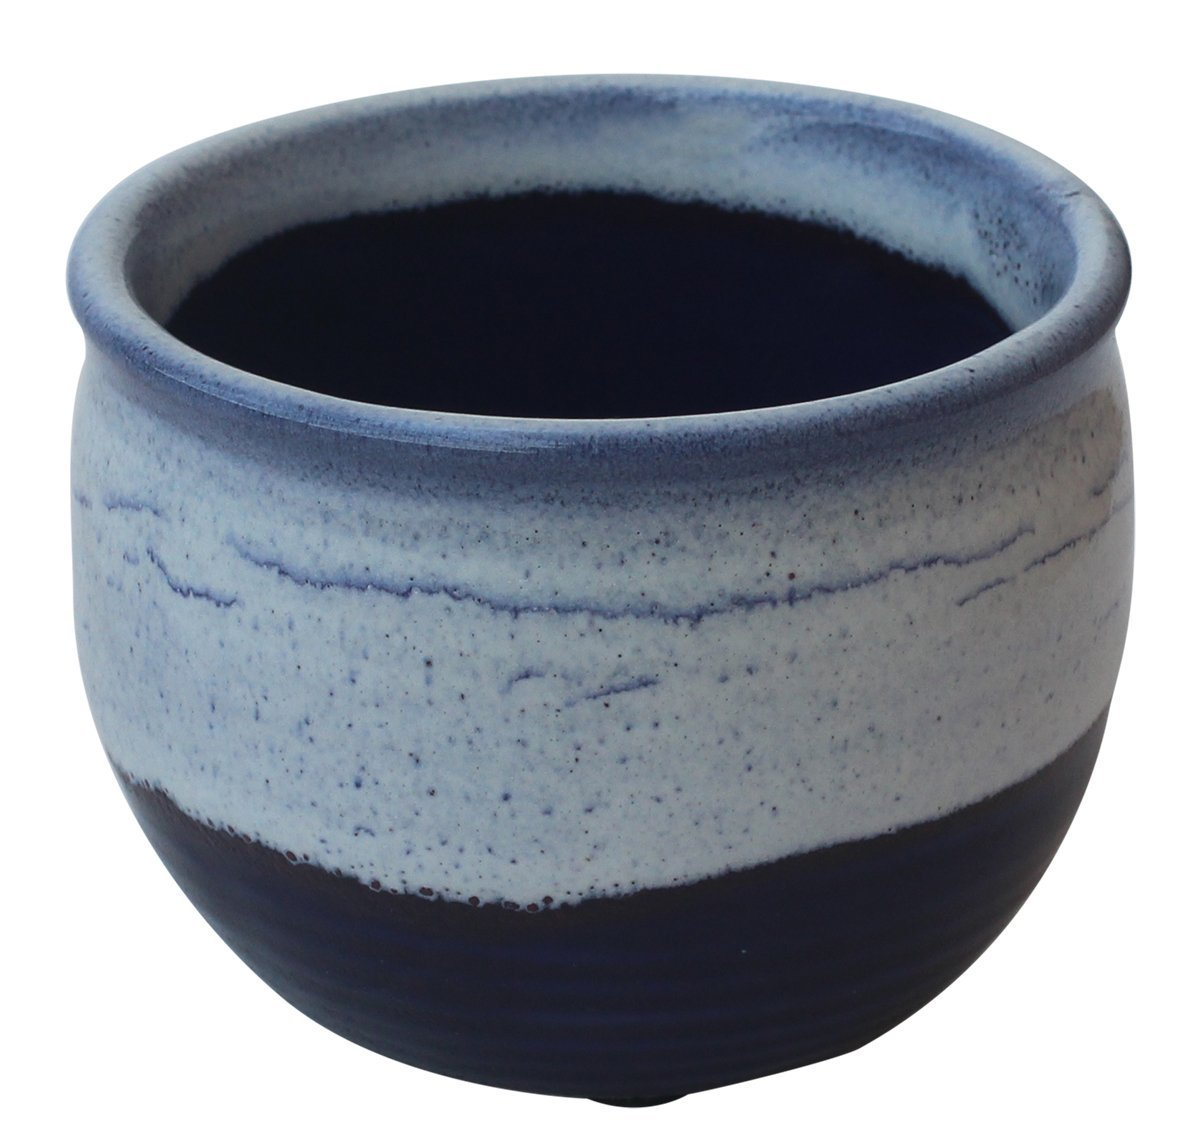 DEAL OF THE DAY - AB Handicrafts Sky Blue Dark Blue Pottery Shaving Bowl for Men/Bowl For Shave And Cream/Portable Shaving Bowl Mug/Made in India, Beautiful Gift for Men